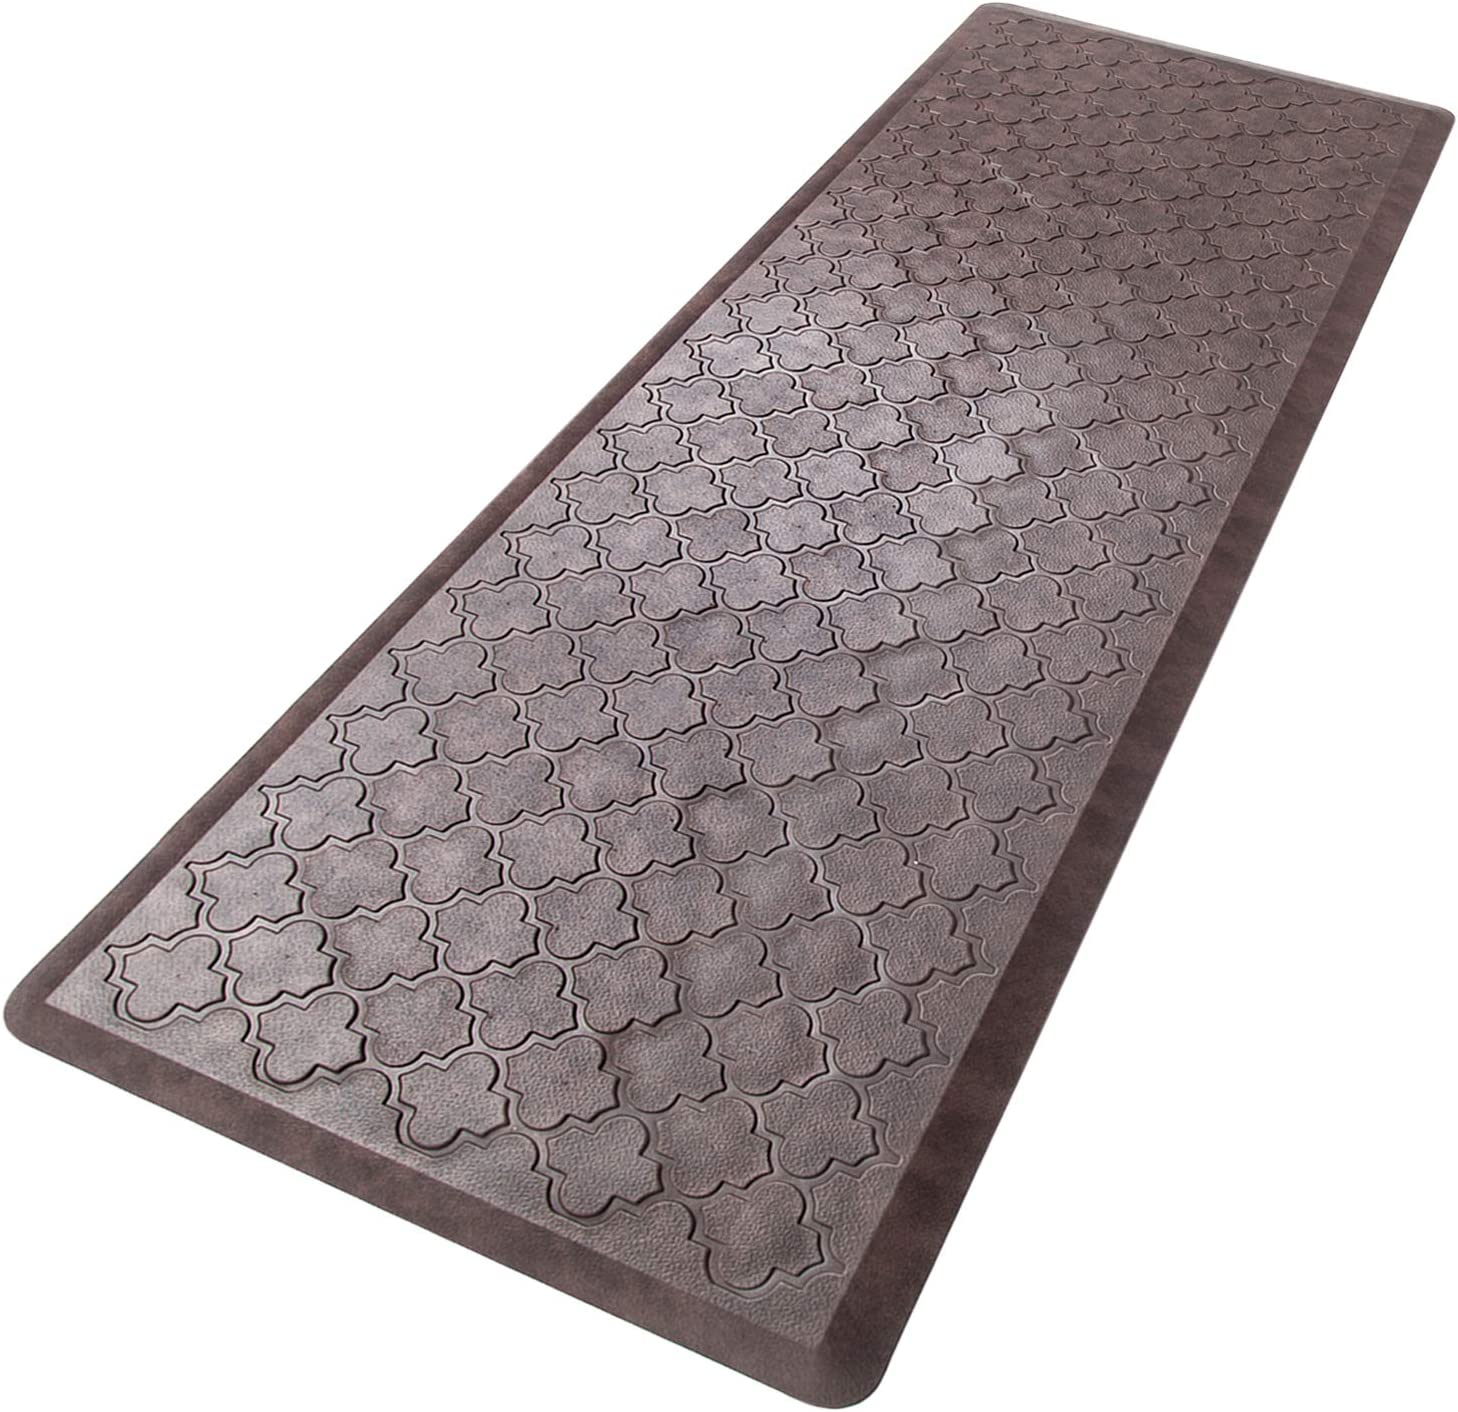 "HEBE Oversized Anti Fatigue Comfort Mats for Kitchen Floor Standing Desk Non Slip Thick Cushioned Kitchen Floor Mats Runner Waterproof Kitchen Rugs Heavy Duty Comfort Standing Mats,20""x60"",Brown: Kitchen & Dining"